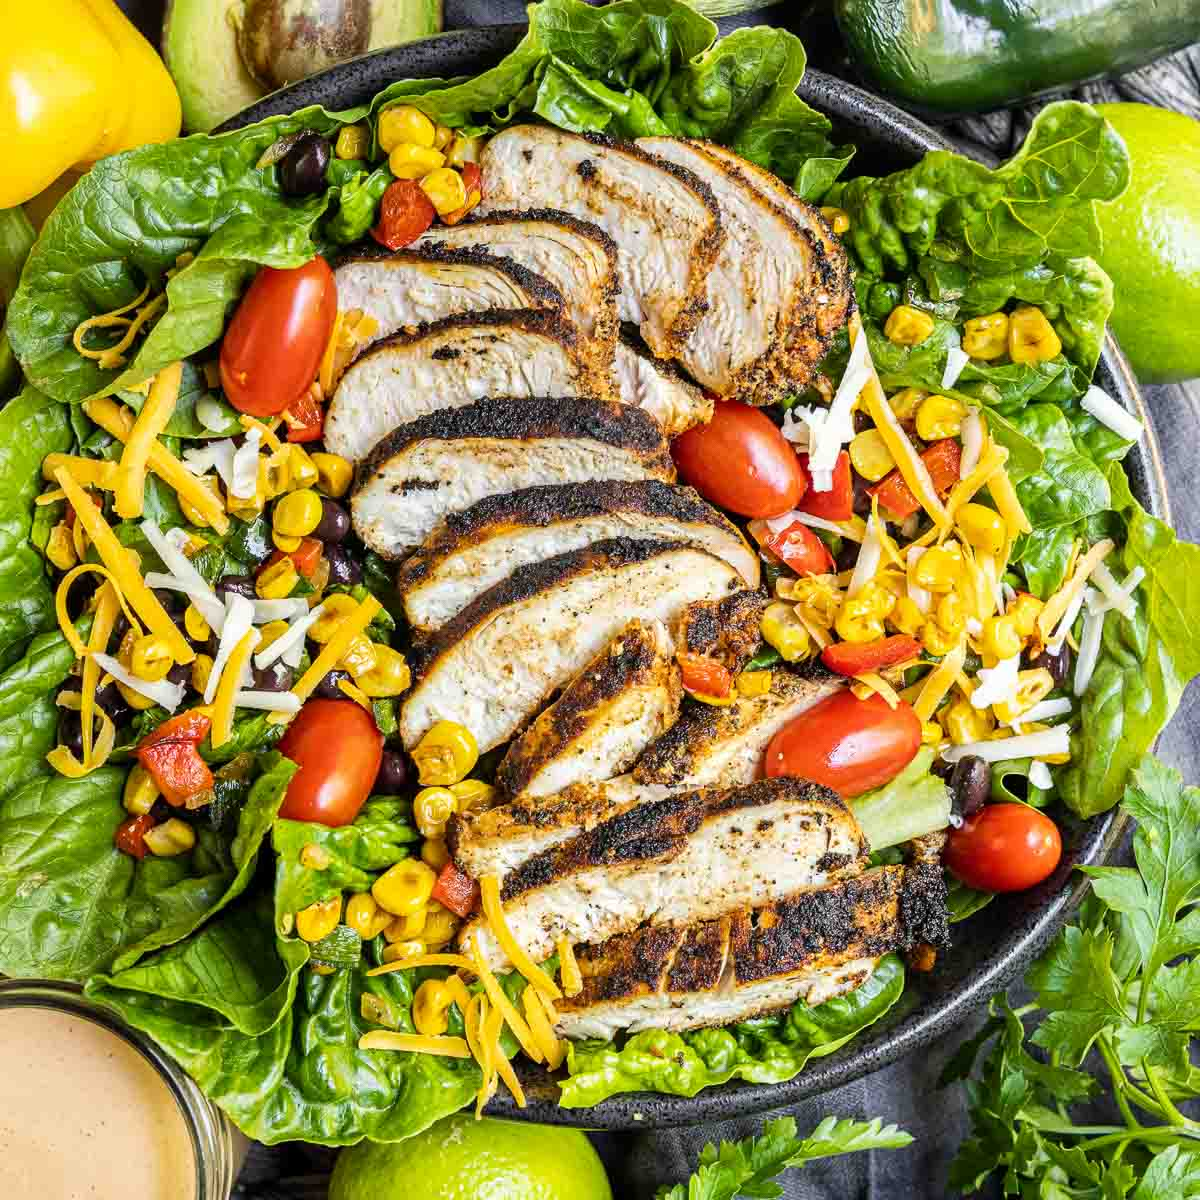 Southwest Salad made with blackened chicken